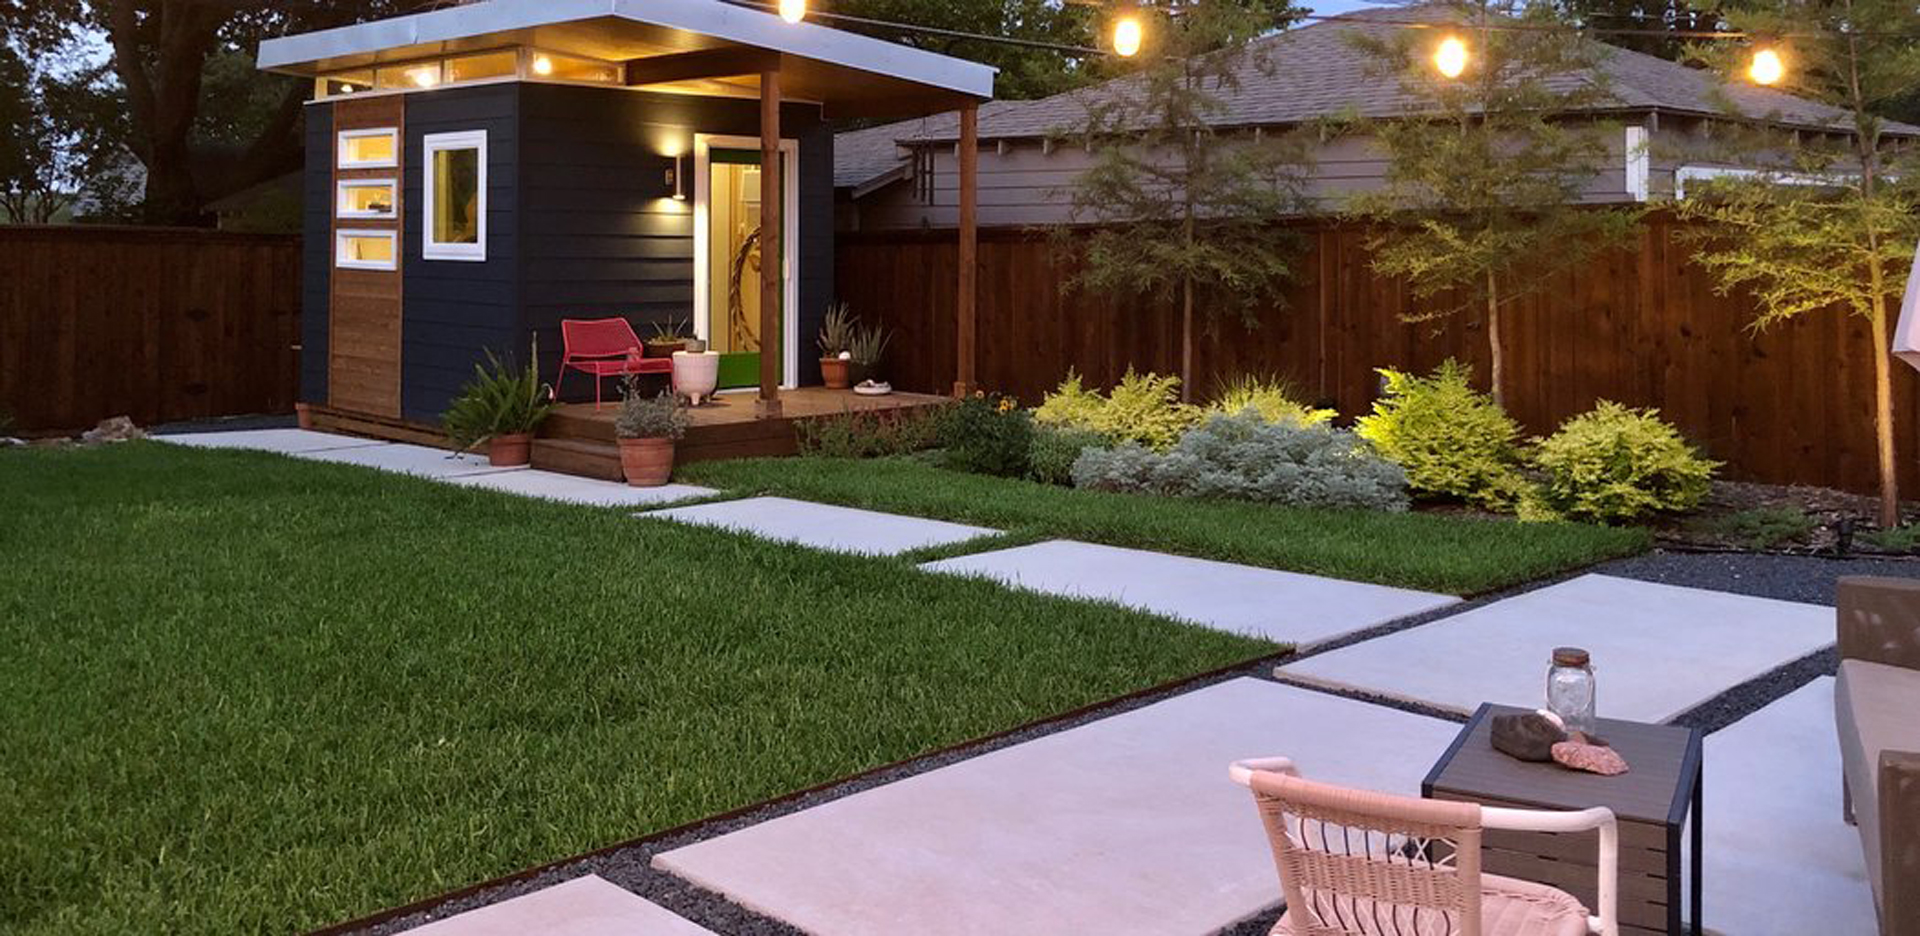 Creating Beautiful Outdoor Spaces Since 1998